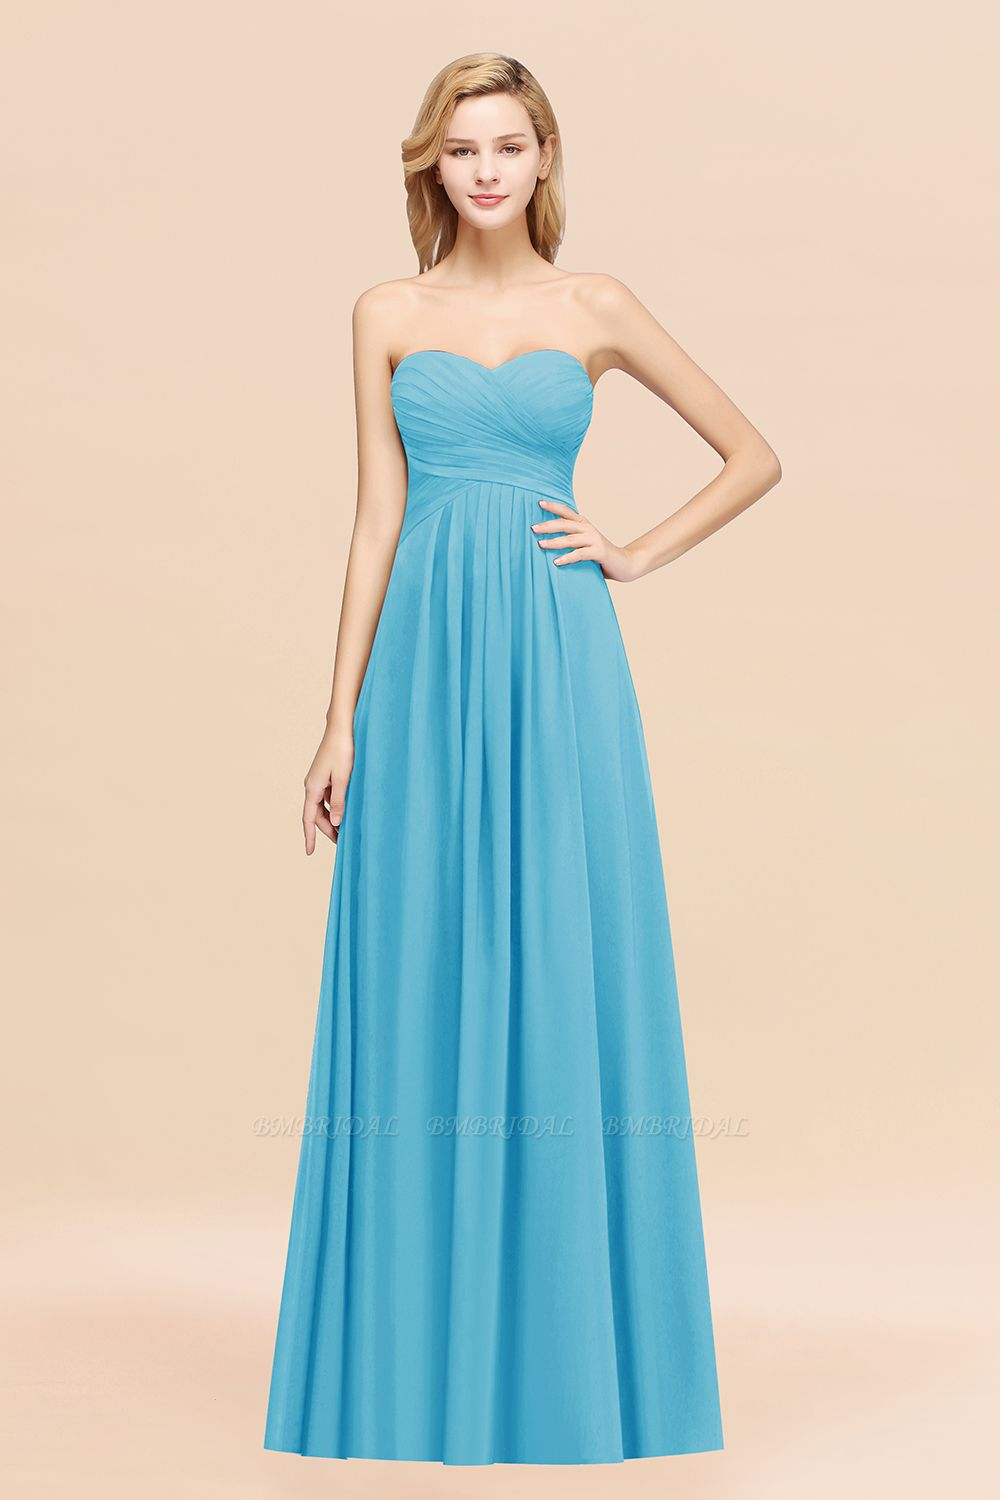 BMbridal Vintage Sweetheart Long Grape Affordable Bridesmaid Dresses Online